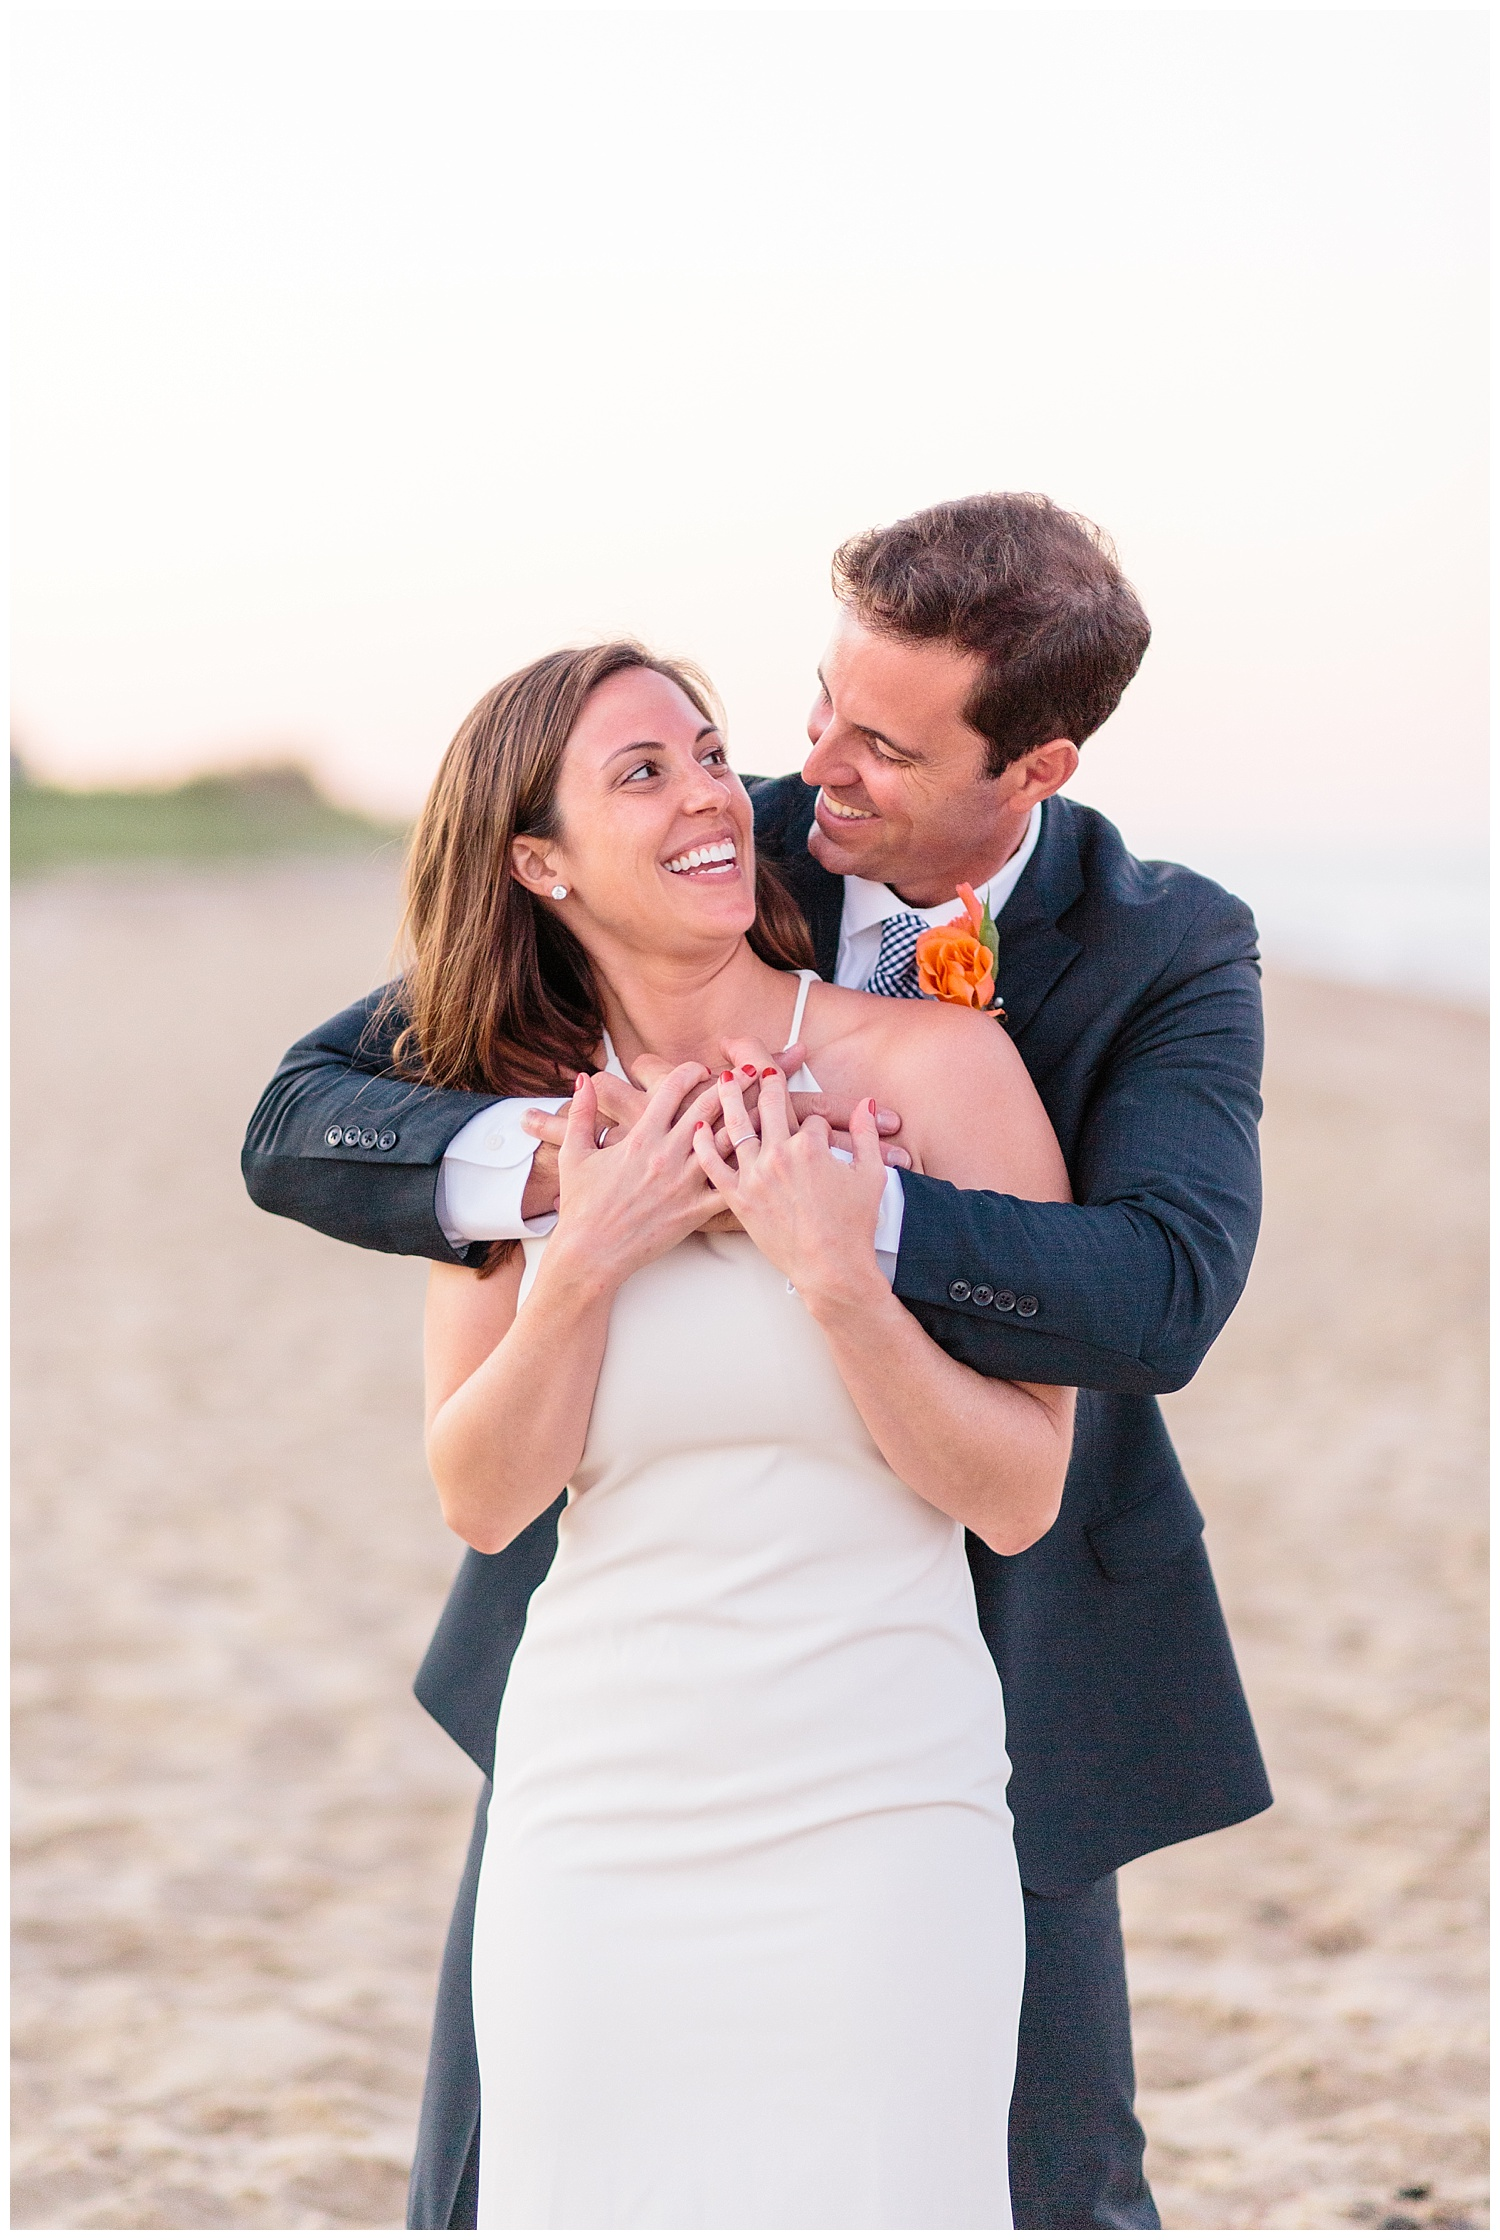 emily-belson-photography-nantucket-elopement-54.jpg